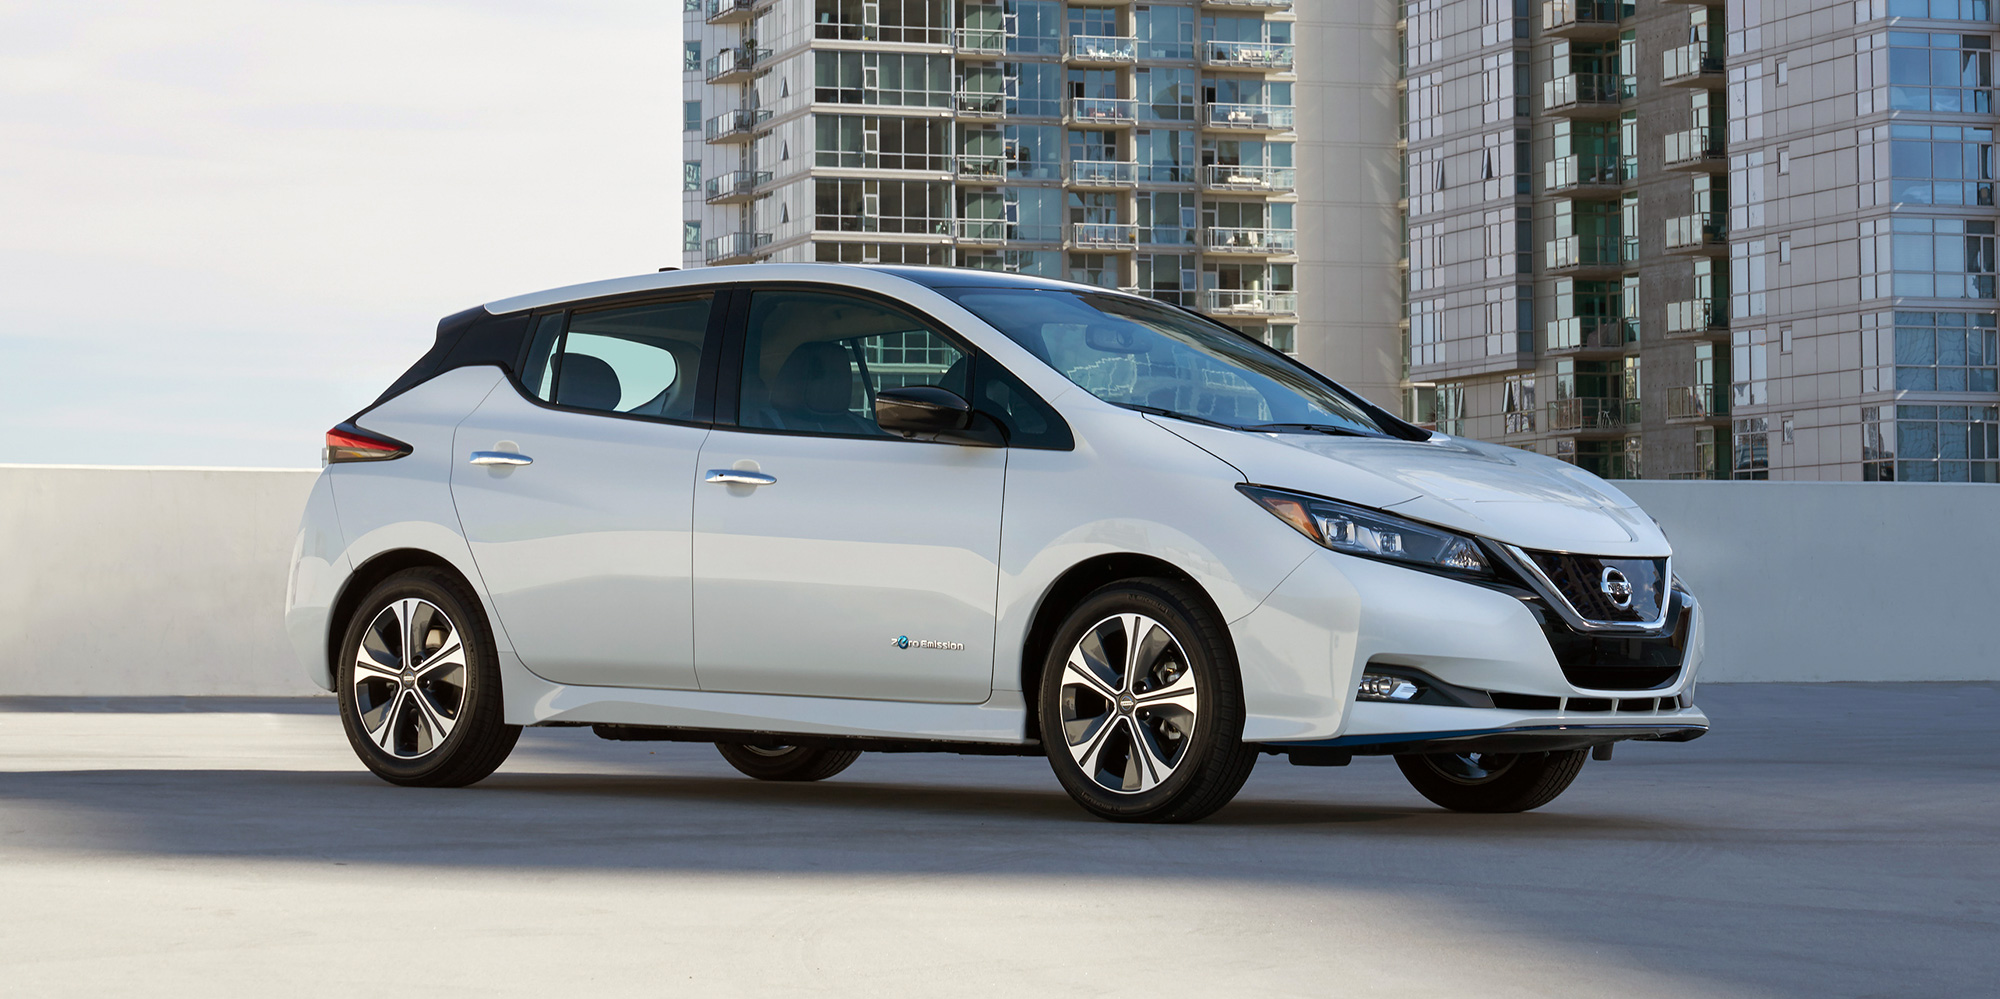 Nissan now consider the Leaf to be an econobox.